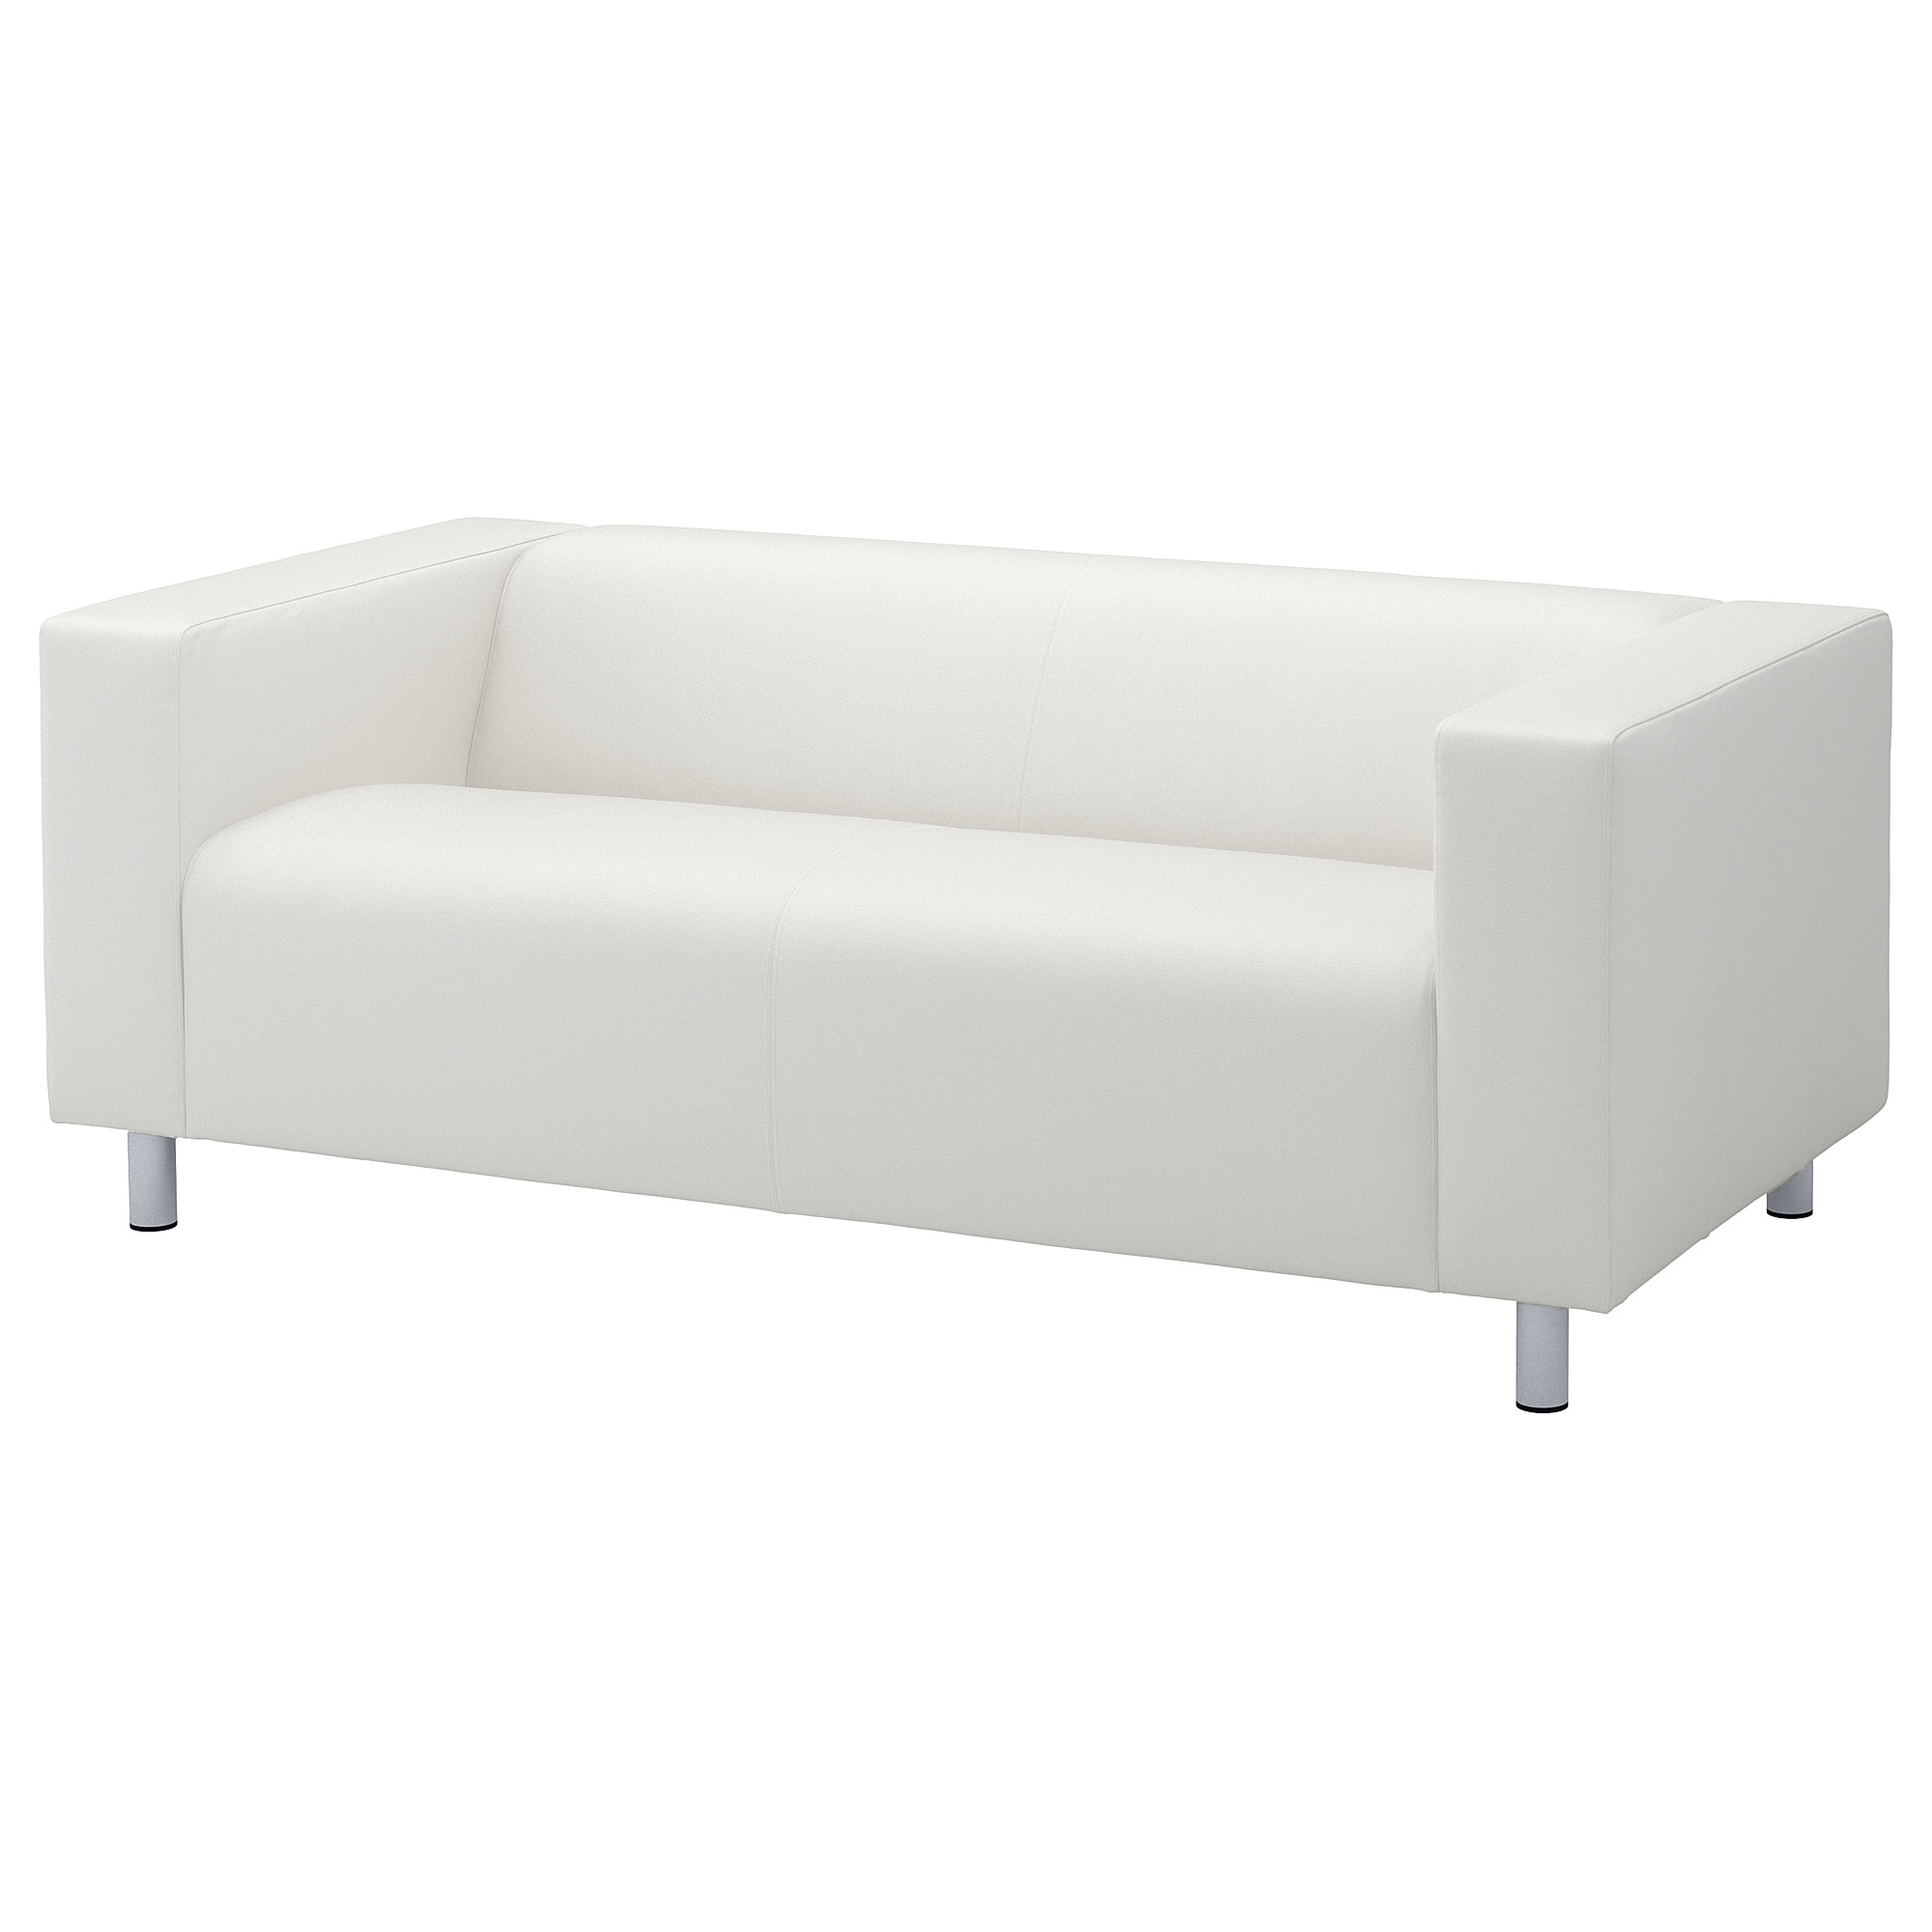 Couches In Ikea Loveseat Klippan Bomstad White